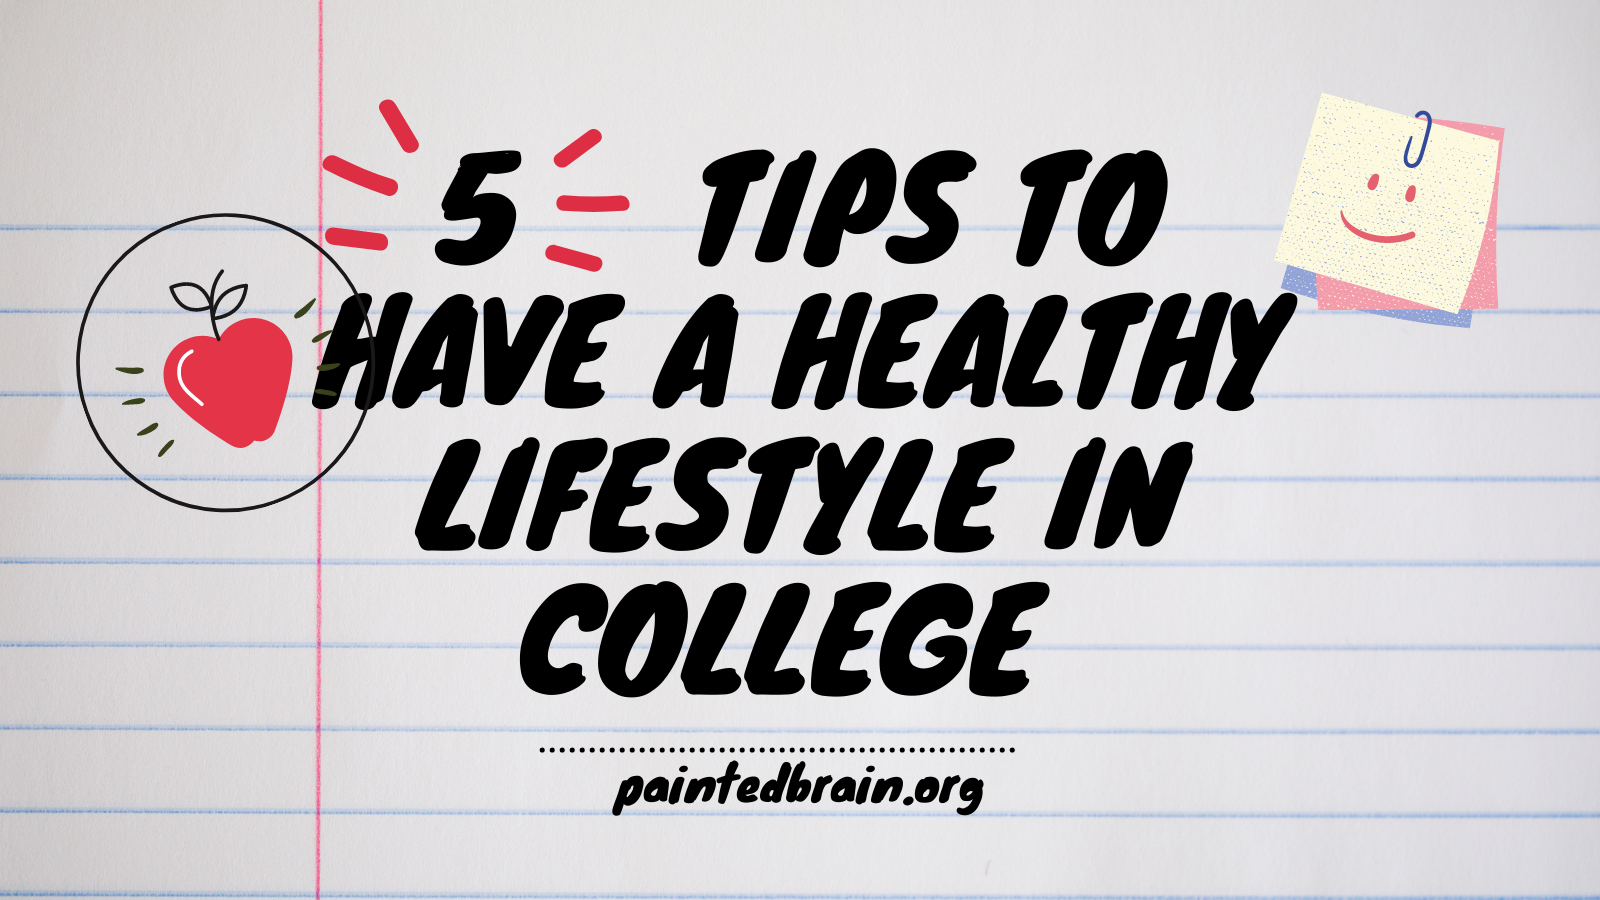 5 tips to have a healthy lifestyle in college